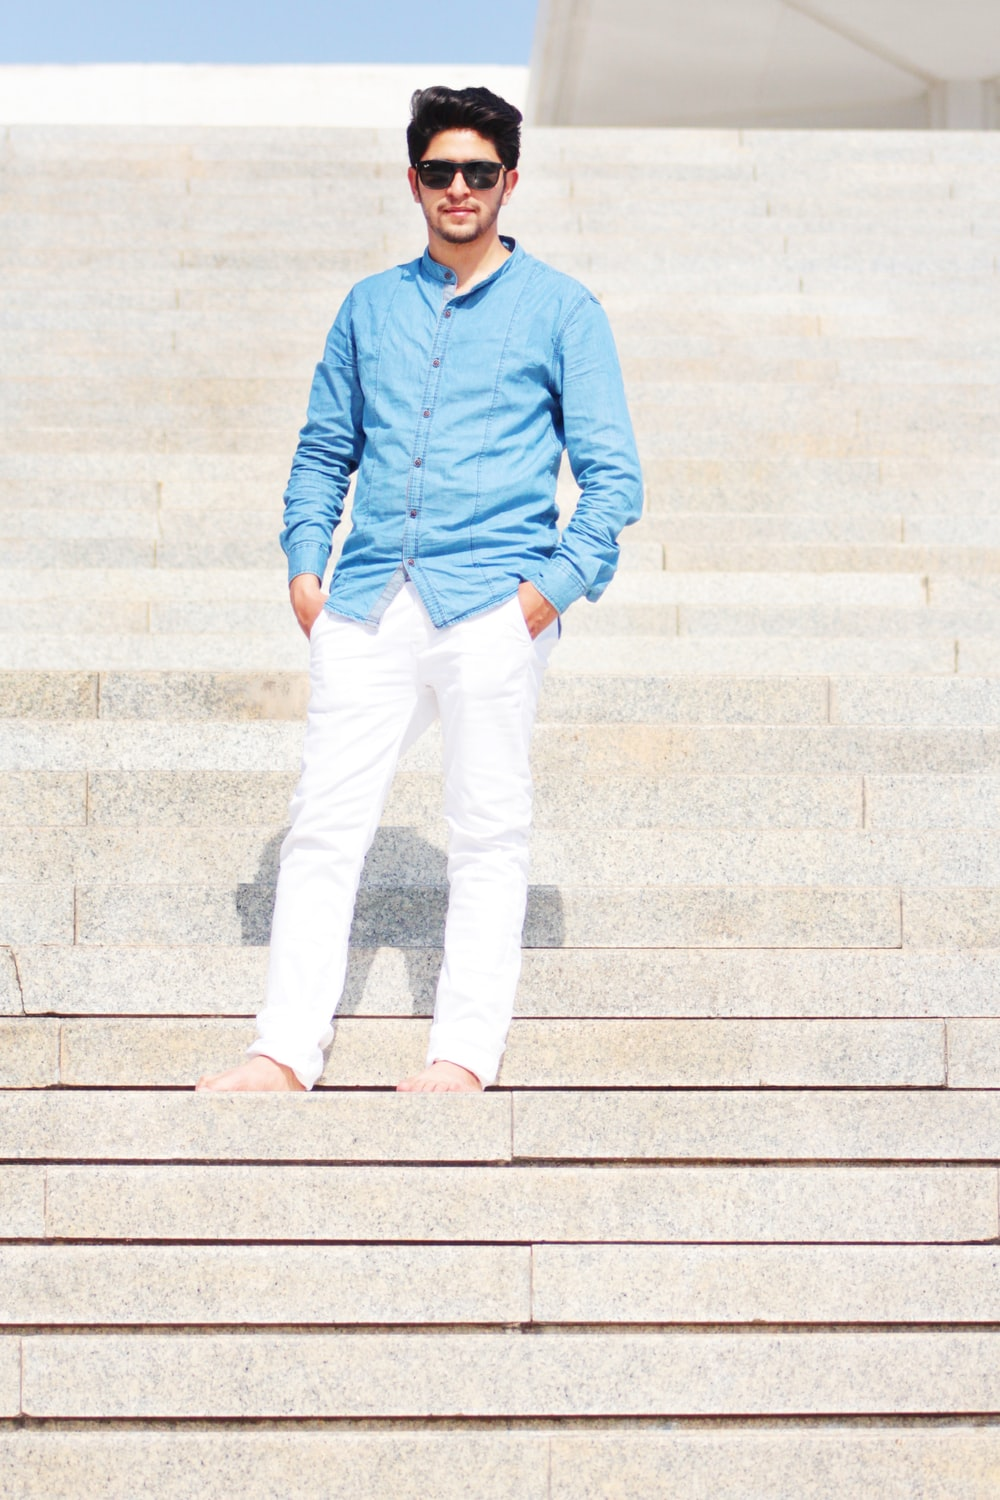 man wearing blue dress shirt and white jeans